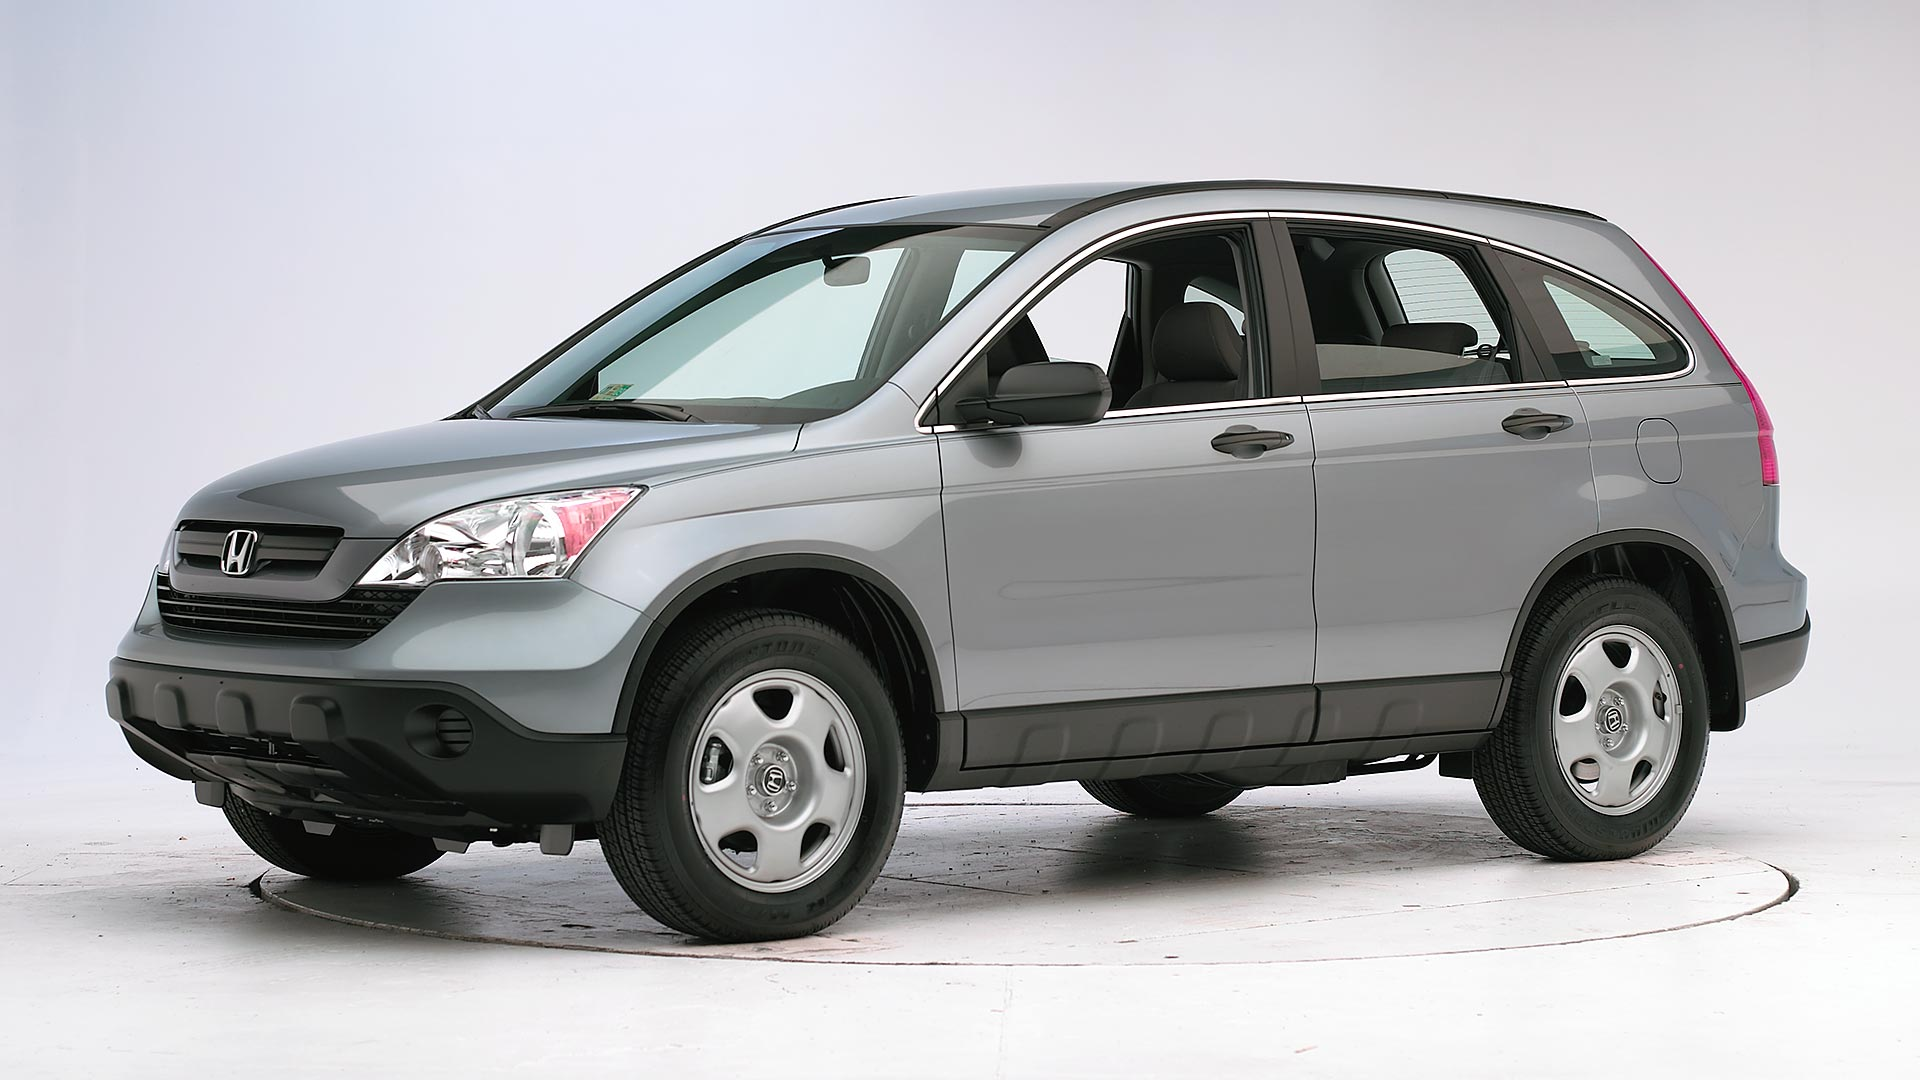 2009 Honda CR-V 4-door SUV